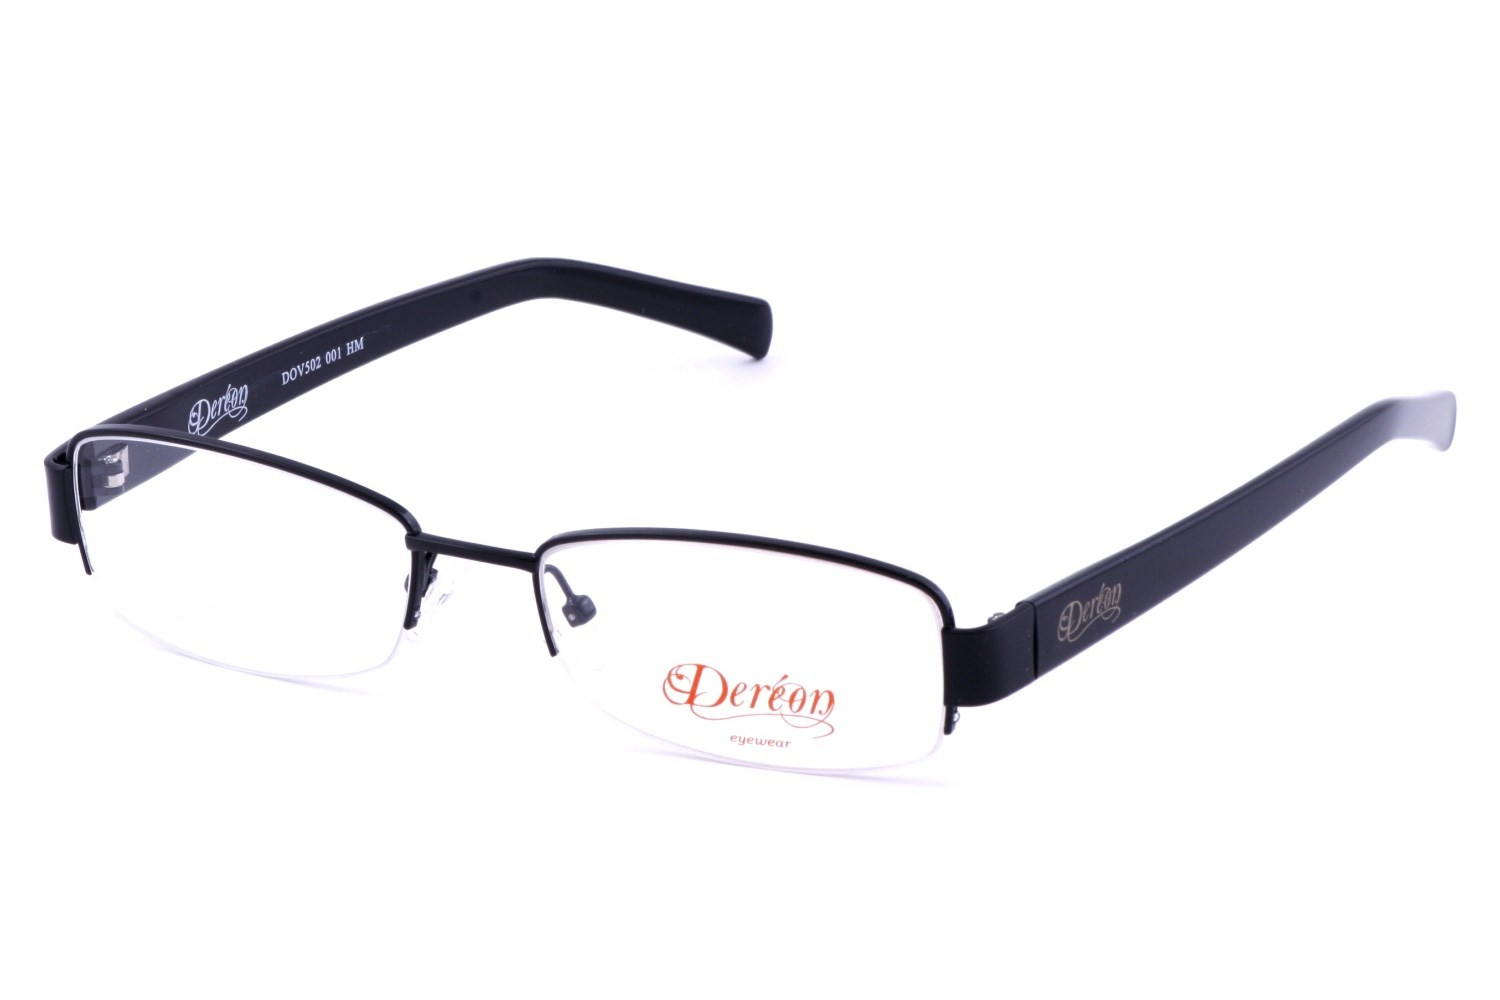 Dereon DOV502 Prescription Eyeglasses Frames